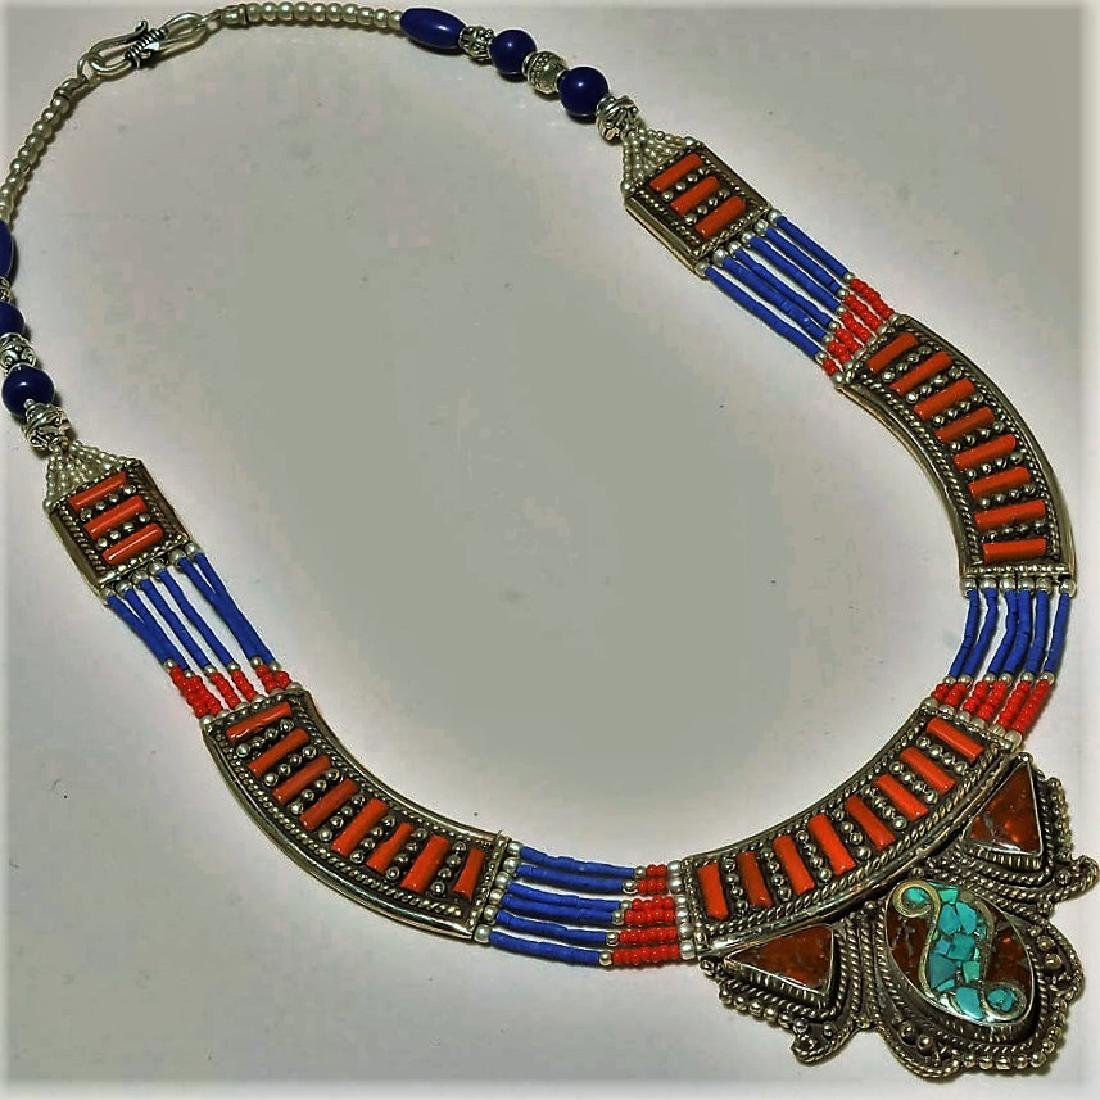 Turquoise & Red Coral with Lapis Lazuli Necklace